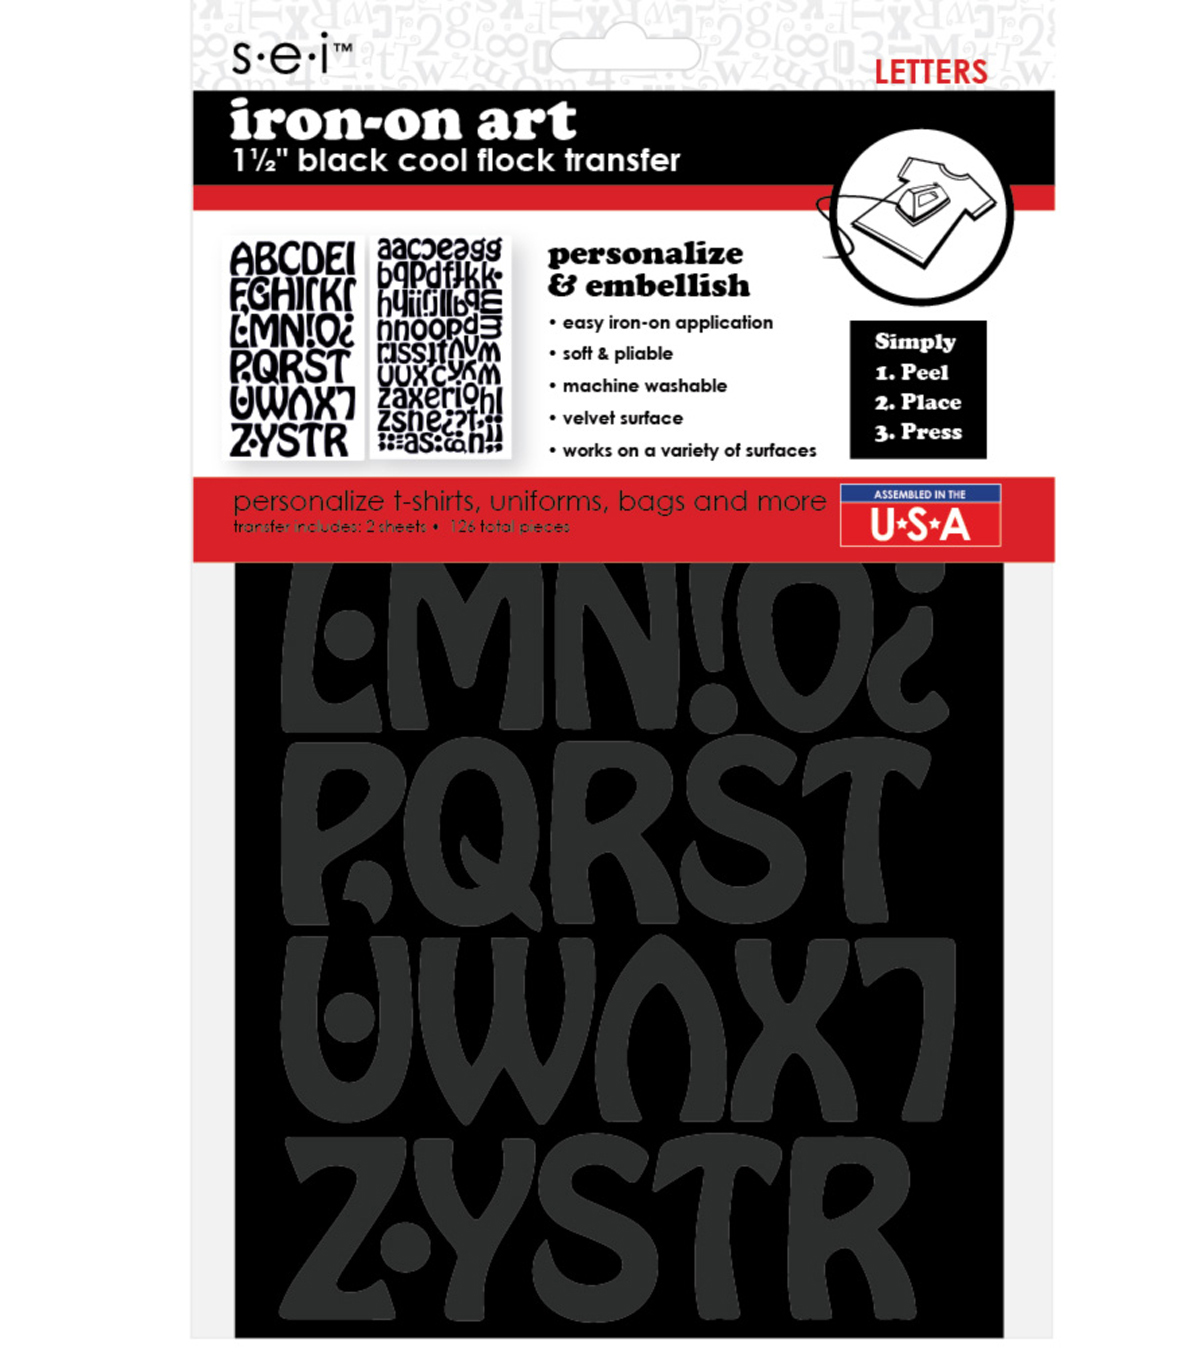 Iron-On Art Flocked Transfer Letters-Cool Black